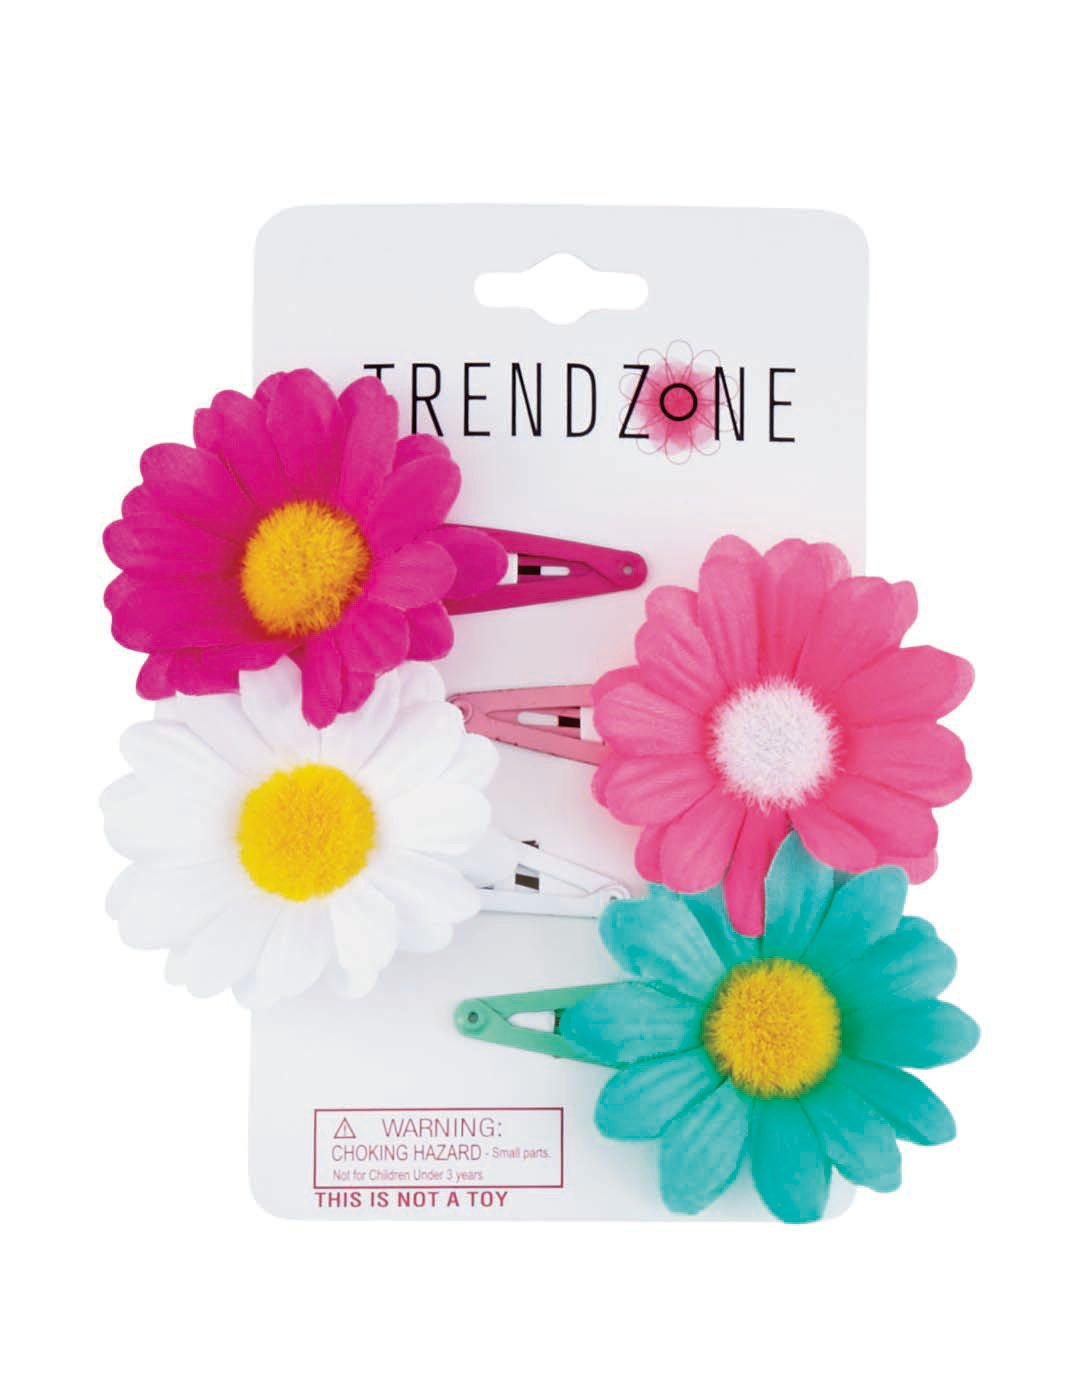 Trend zone daisy snaps shop kids hair accessories at heb izmirmasajfo